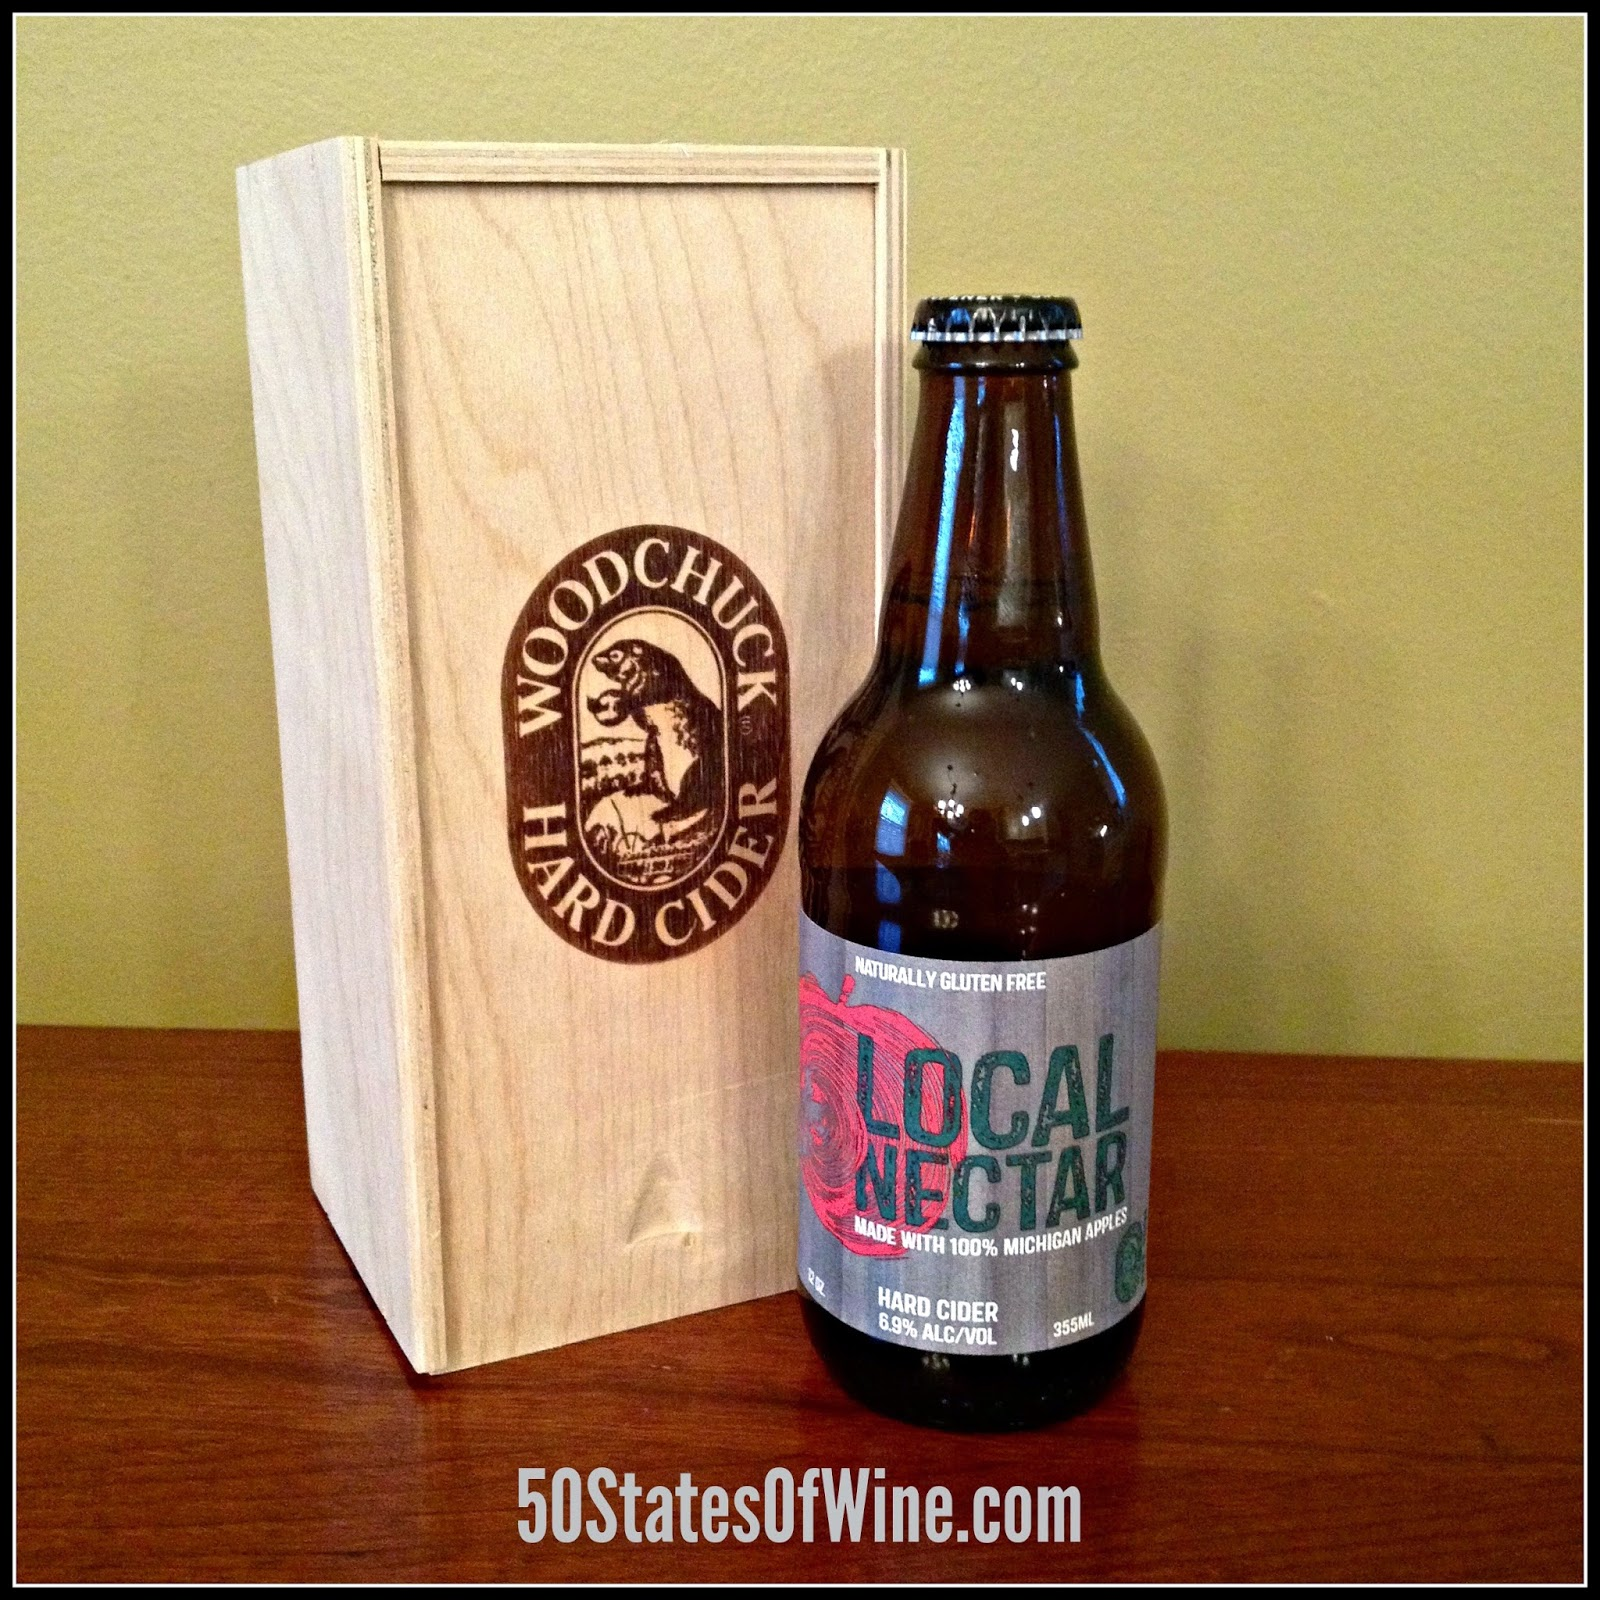 Woodchuck's Michigan Local Nectar Cider